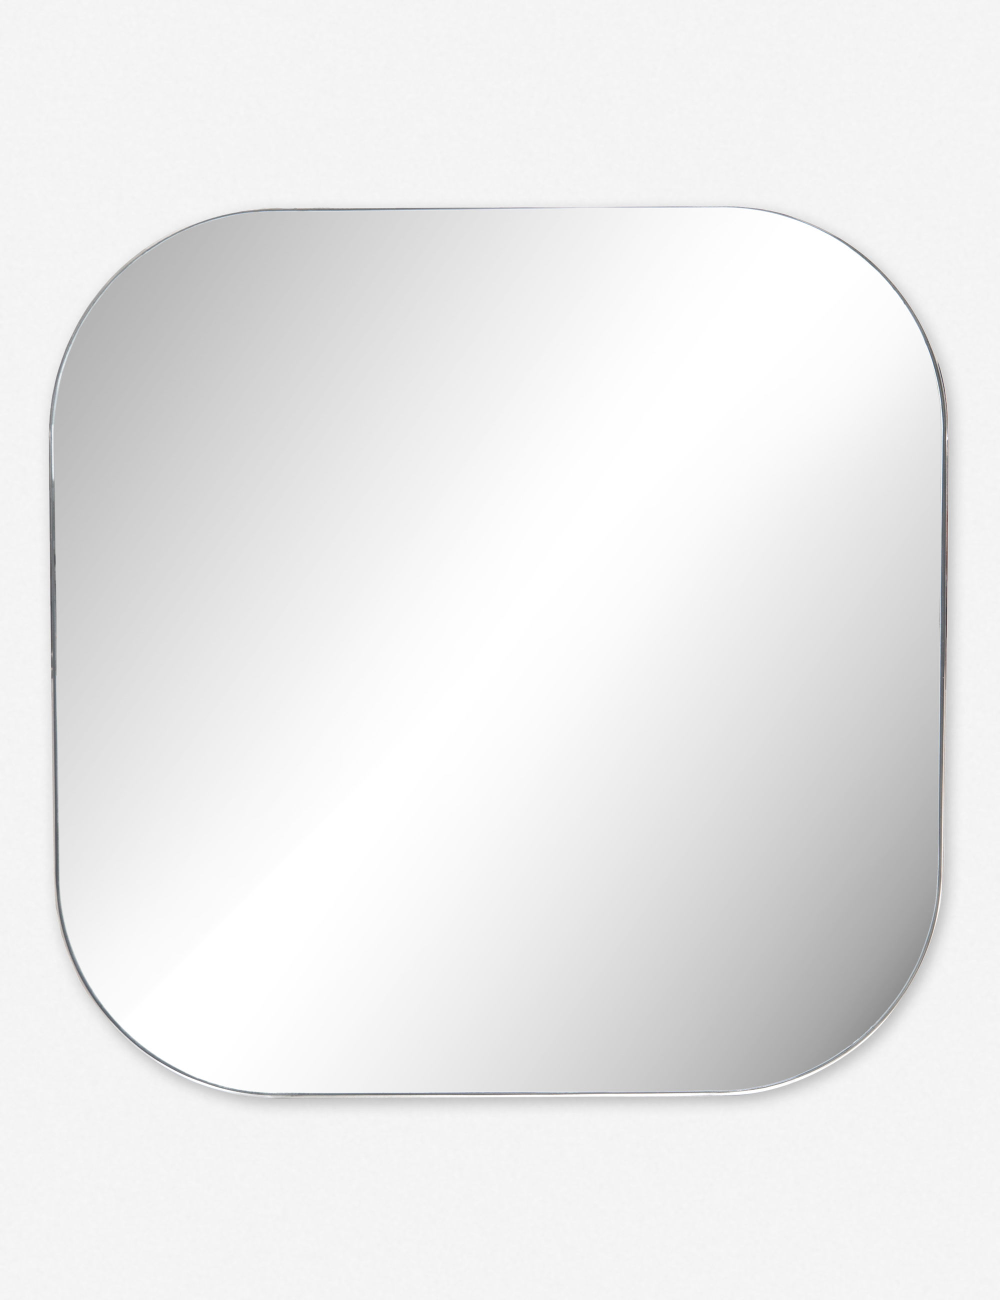 Simple Chic But Not Too Sharp This Square Mirror Features Rounded Corners And A Polished Silver Frame For A Look That Square Mirror Lulu And Georgia Mirror